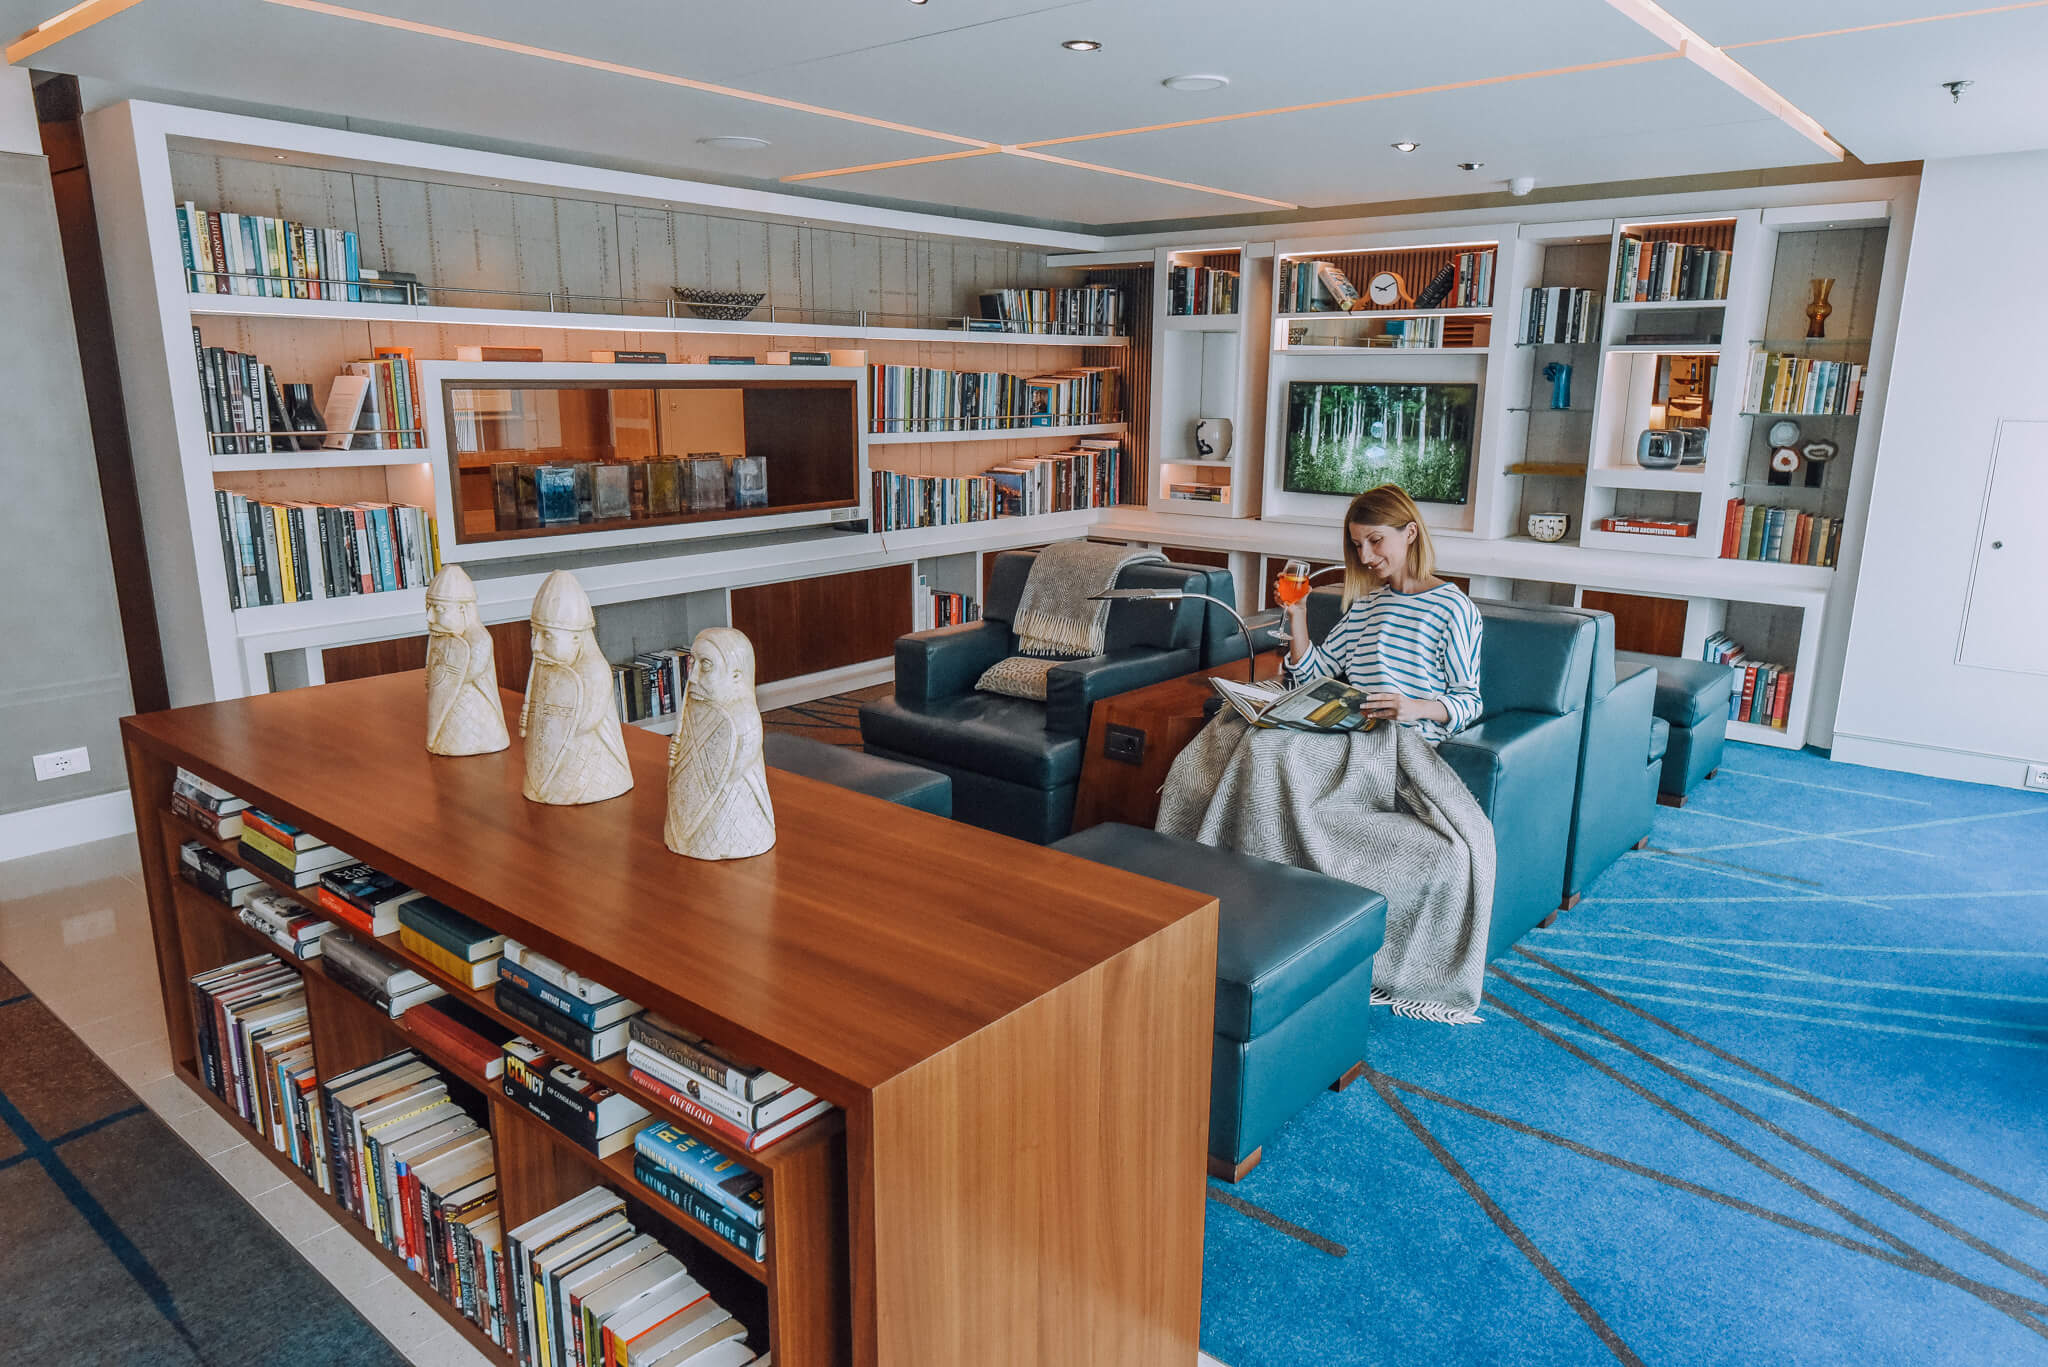 Viking Cruise Library